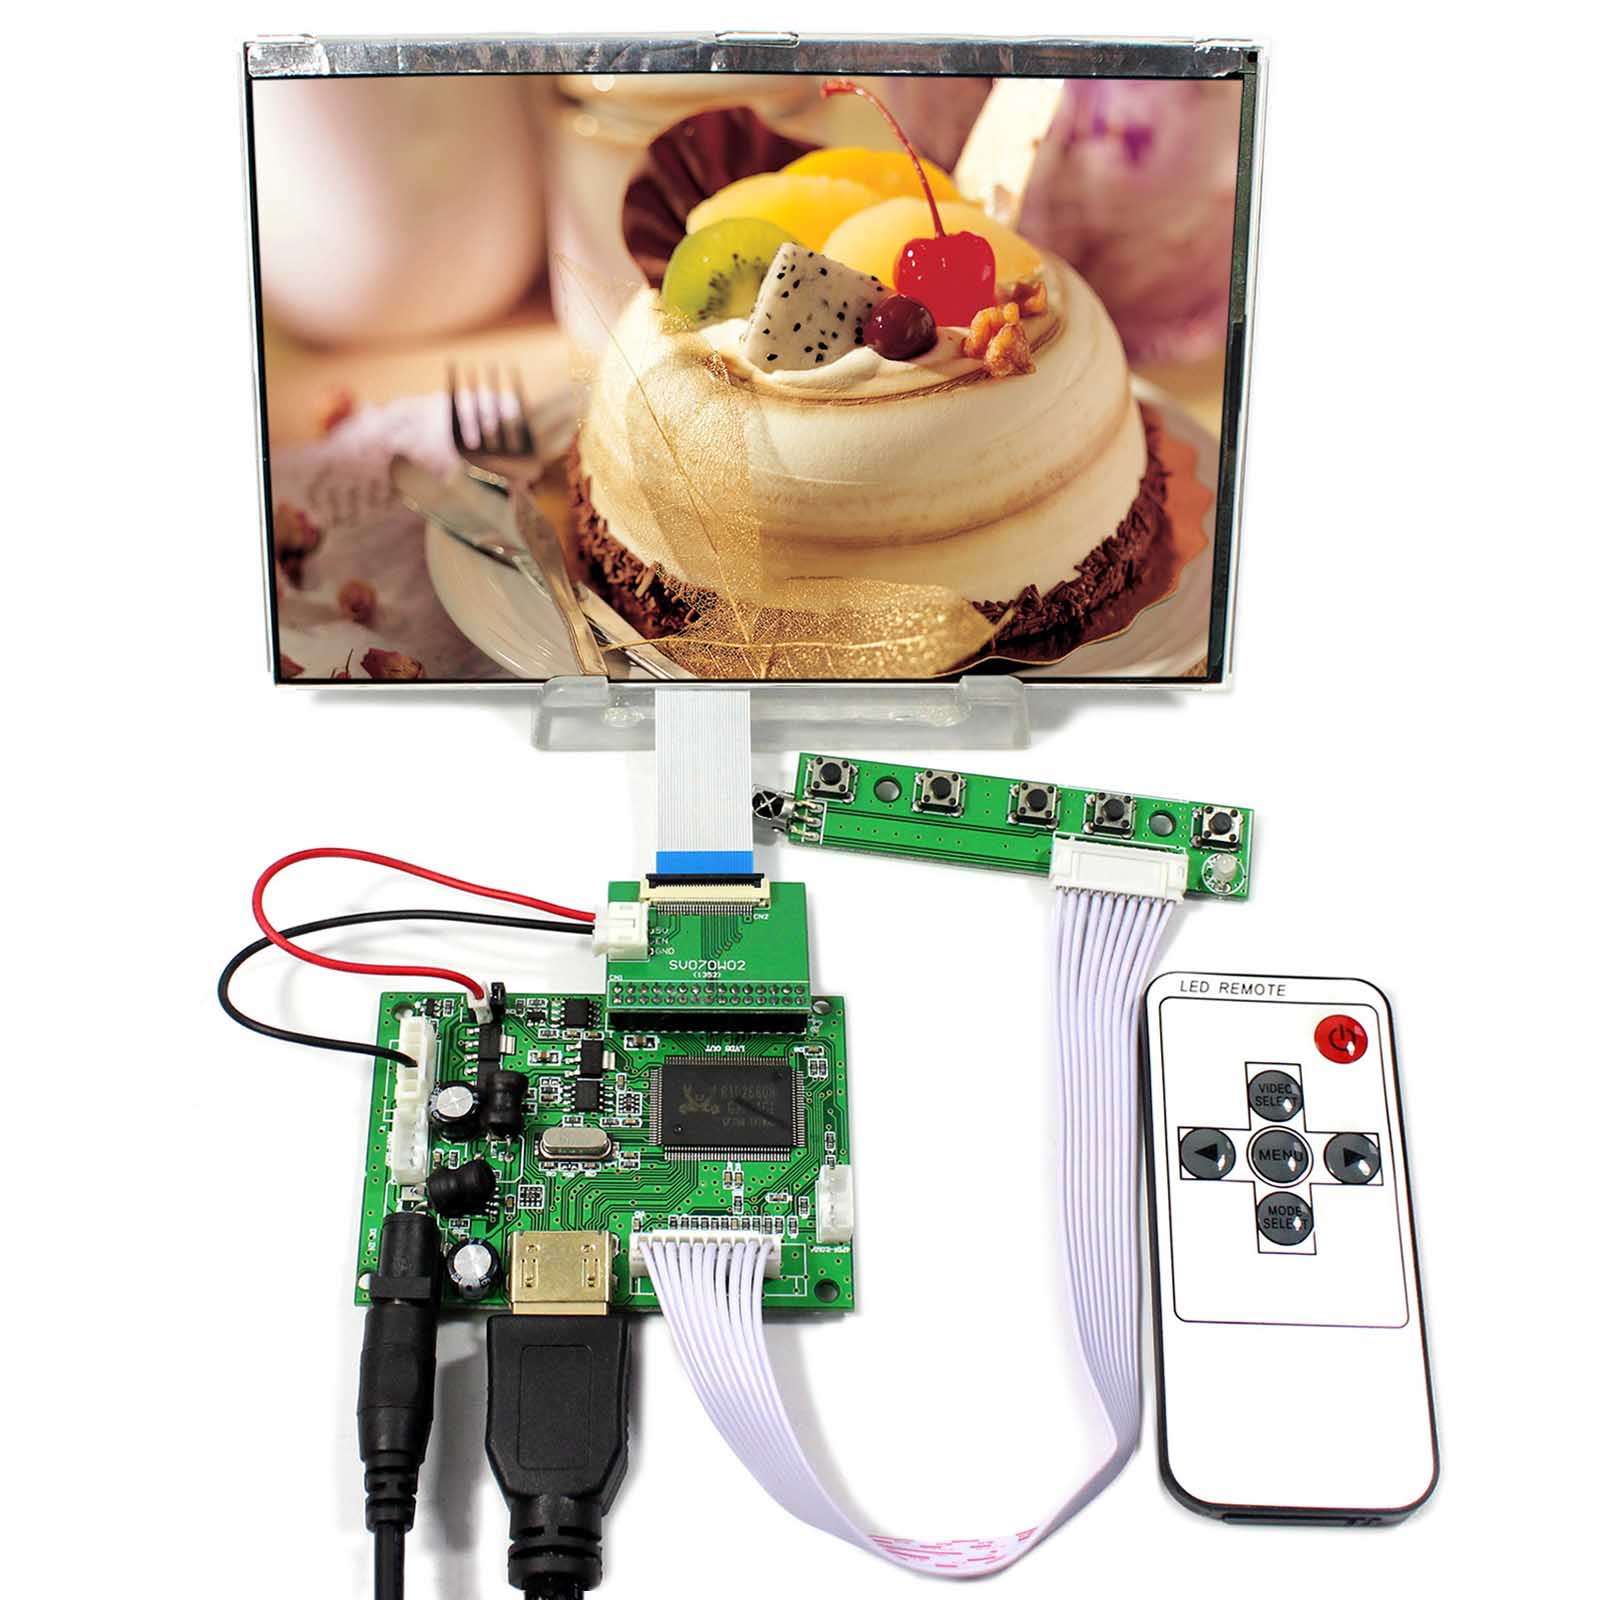 HSD070PWW1-C00 7inch IPS LCD Screen 1280x800 690nit HDMI Board For Raspberry Pi c4265 69001 for hp laserjet 8150 formatter board printer parts